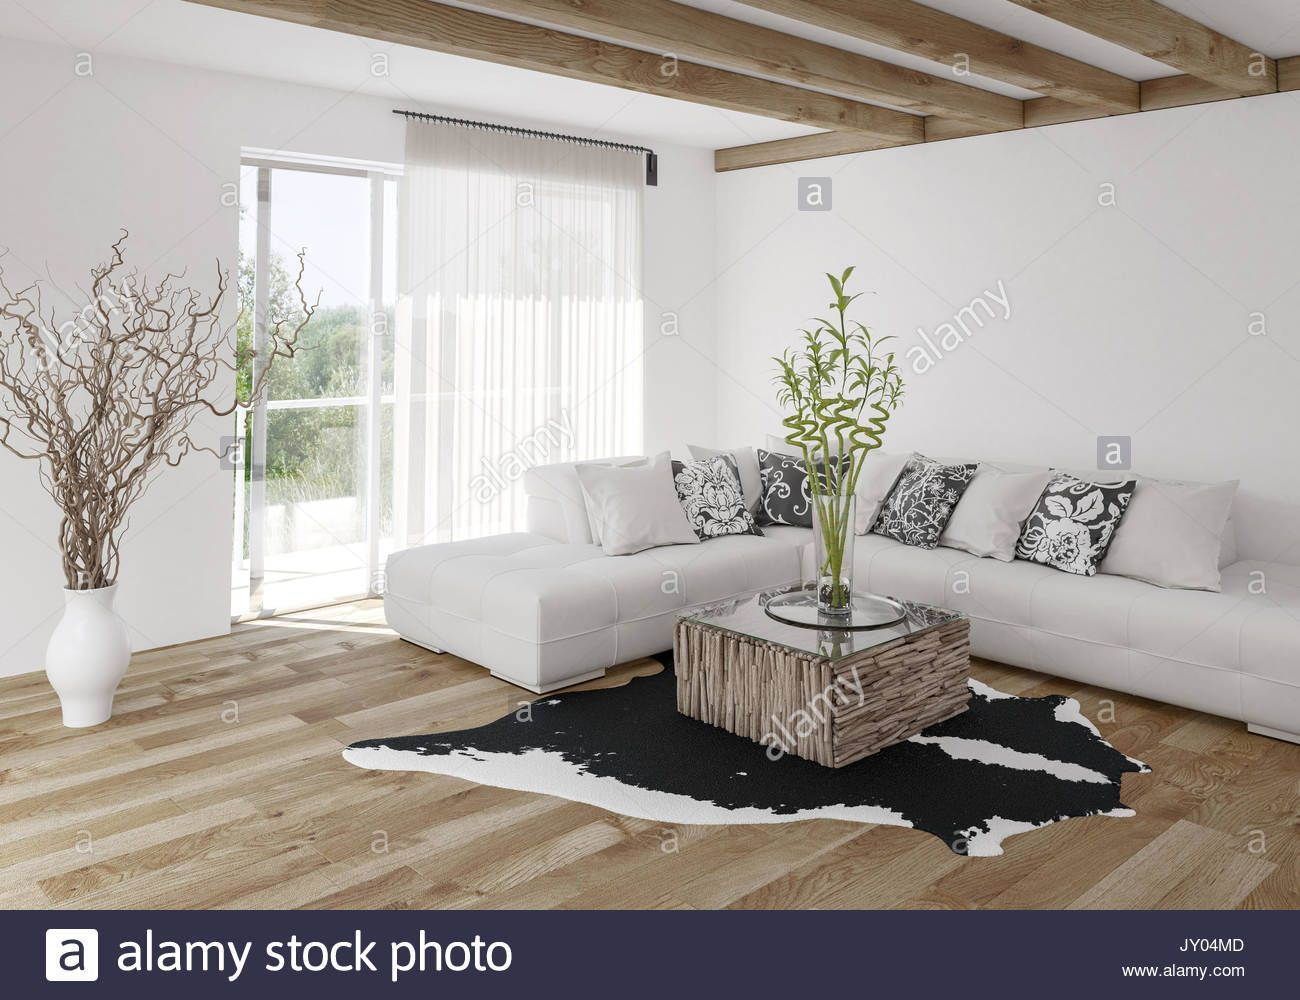 Wohnzimmer Modern Hell Wohnzimmer Modern Hell Home Design In 2019 House Design Home